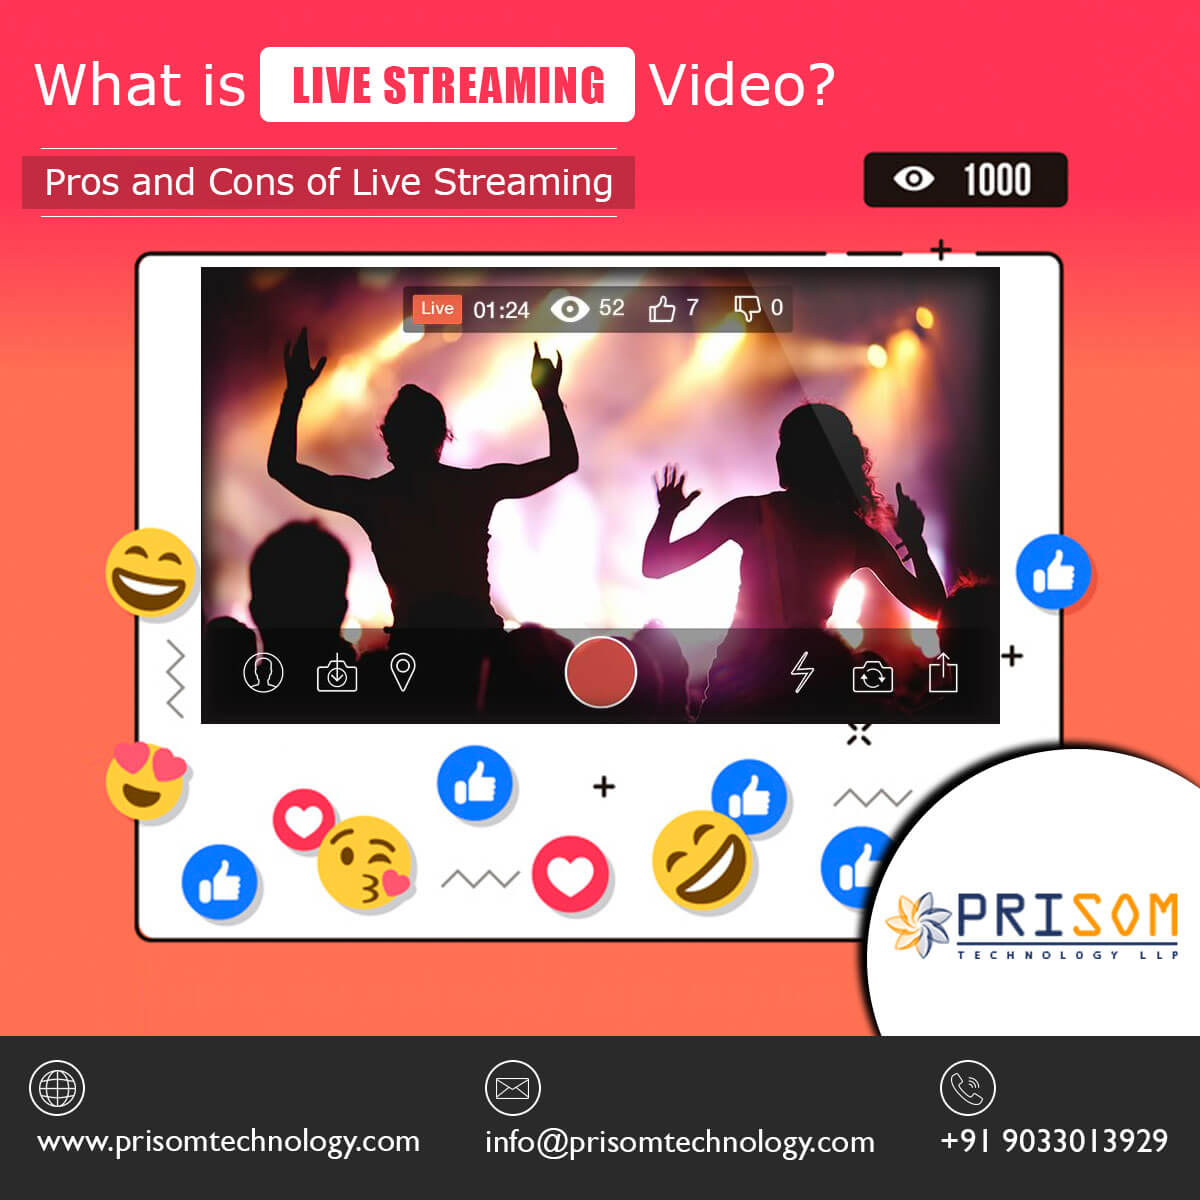 What is live Streaming Video - Pro and Cons of Live Streaming